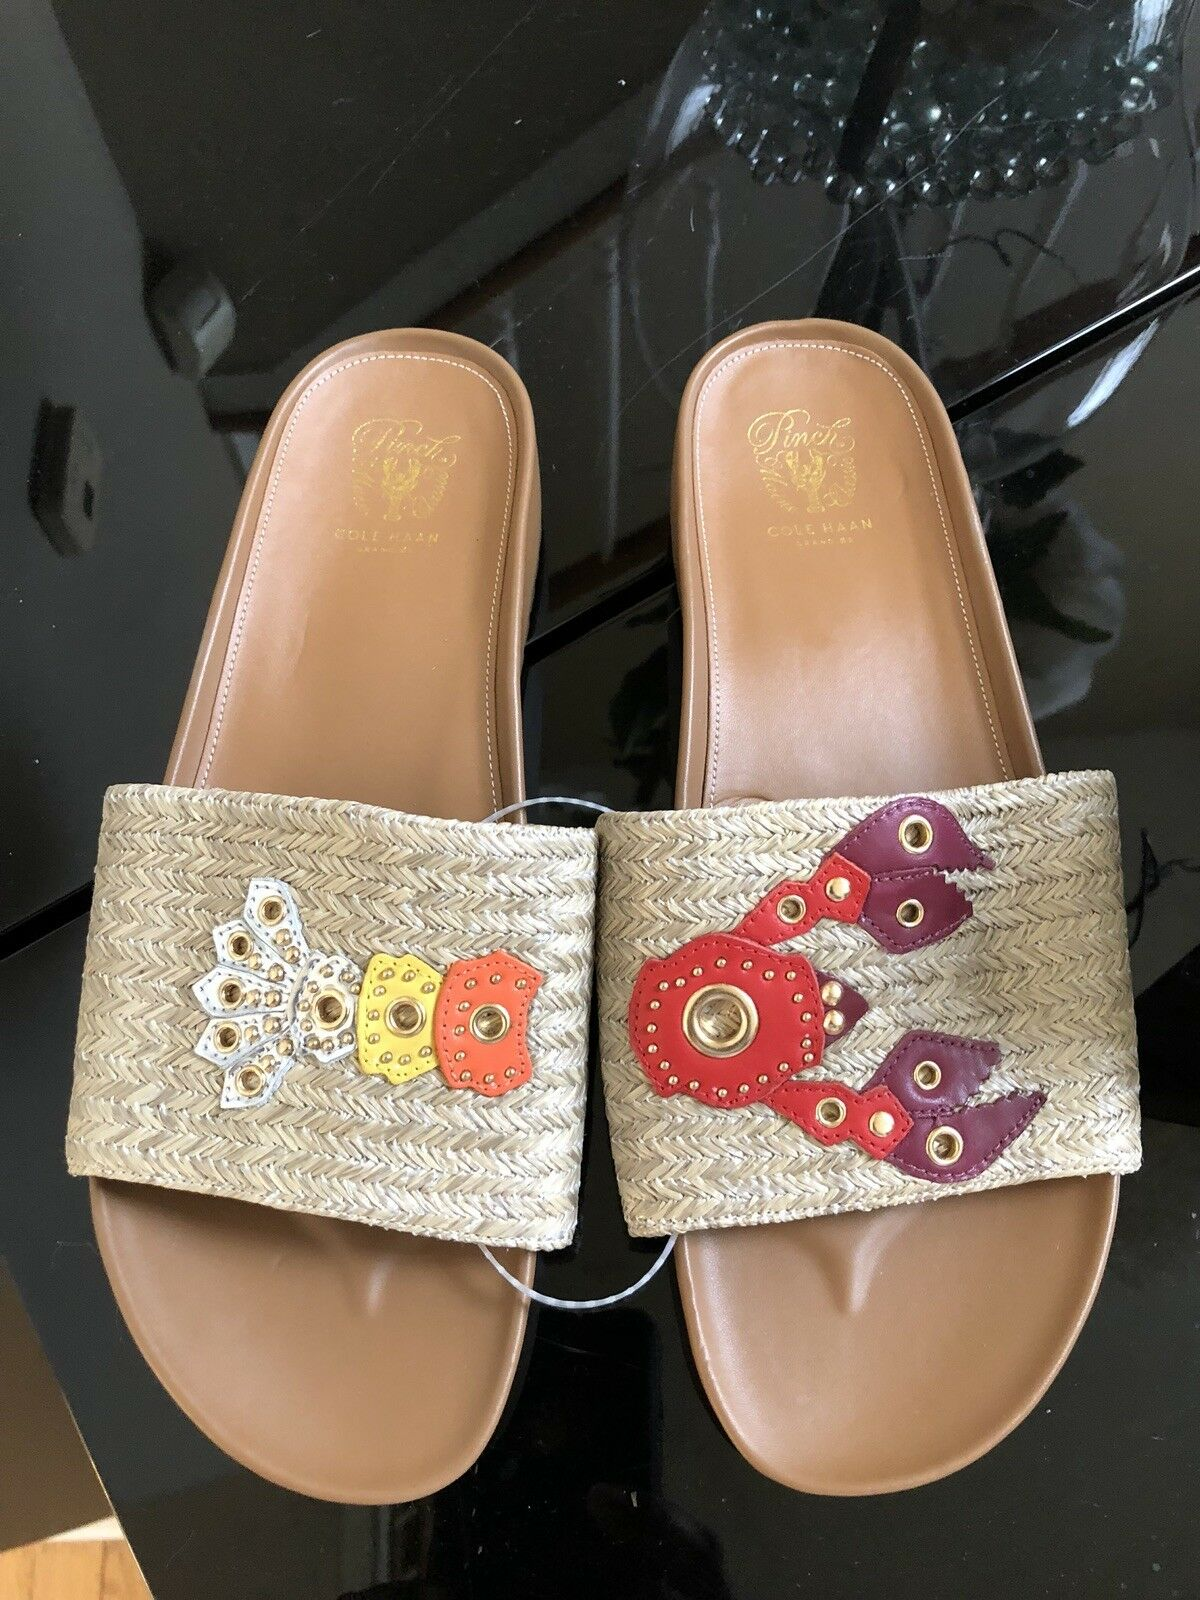 COLE HAAN Grand OS Pinch Lobster Slides Sandals scarpe Dimensione 9 1 2 B